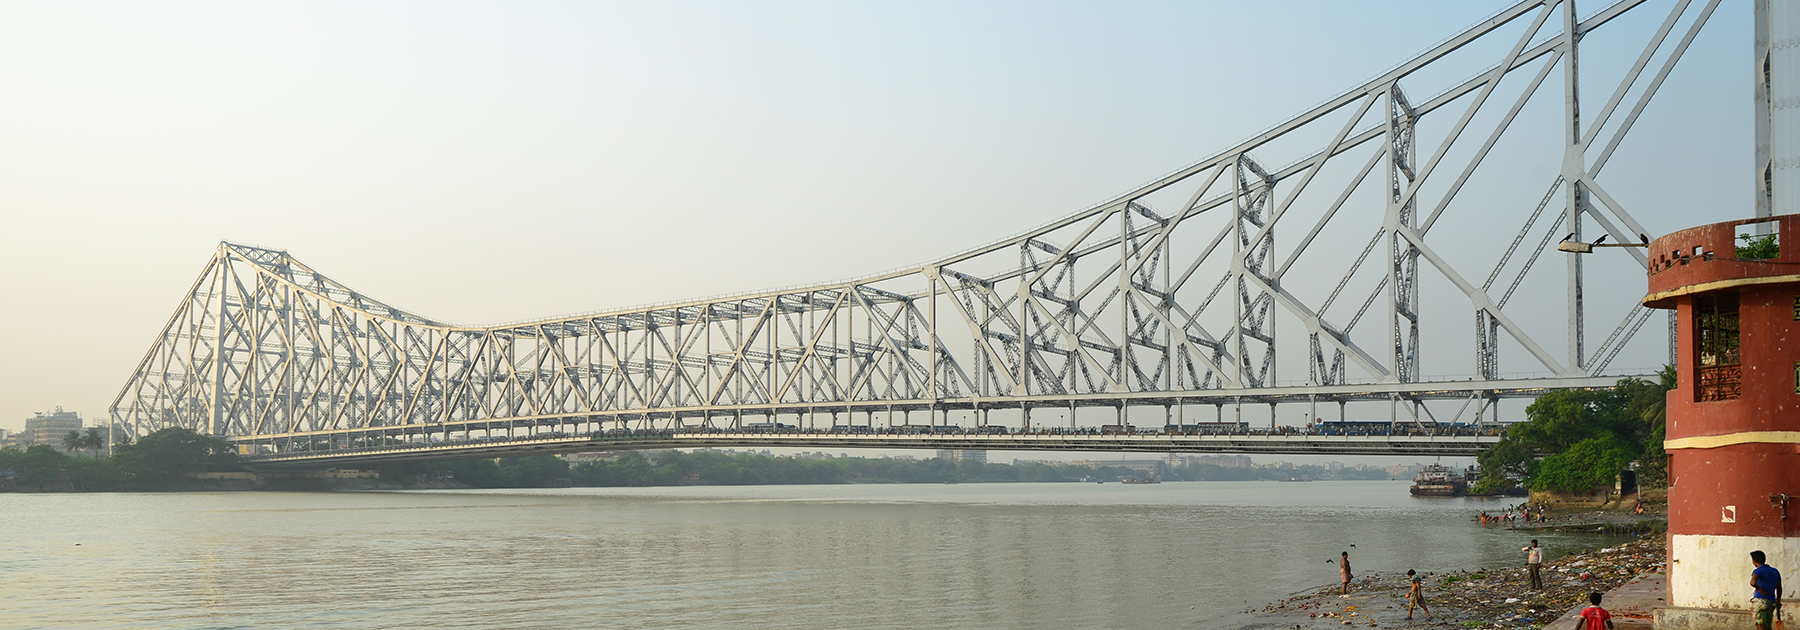 The Howrah Bridge straddles West Bengal's Hooghly River in Kolkata. (Christopher J. Fynn, licensed under CC BY-SA 4.0)